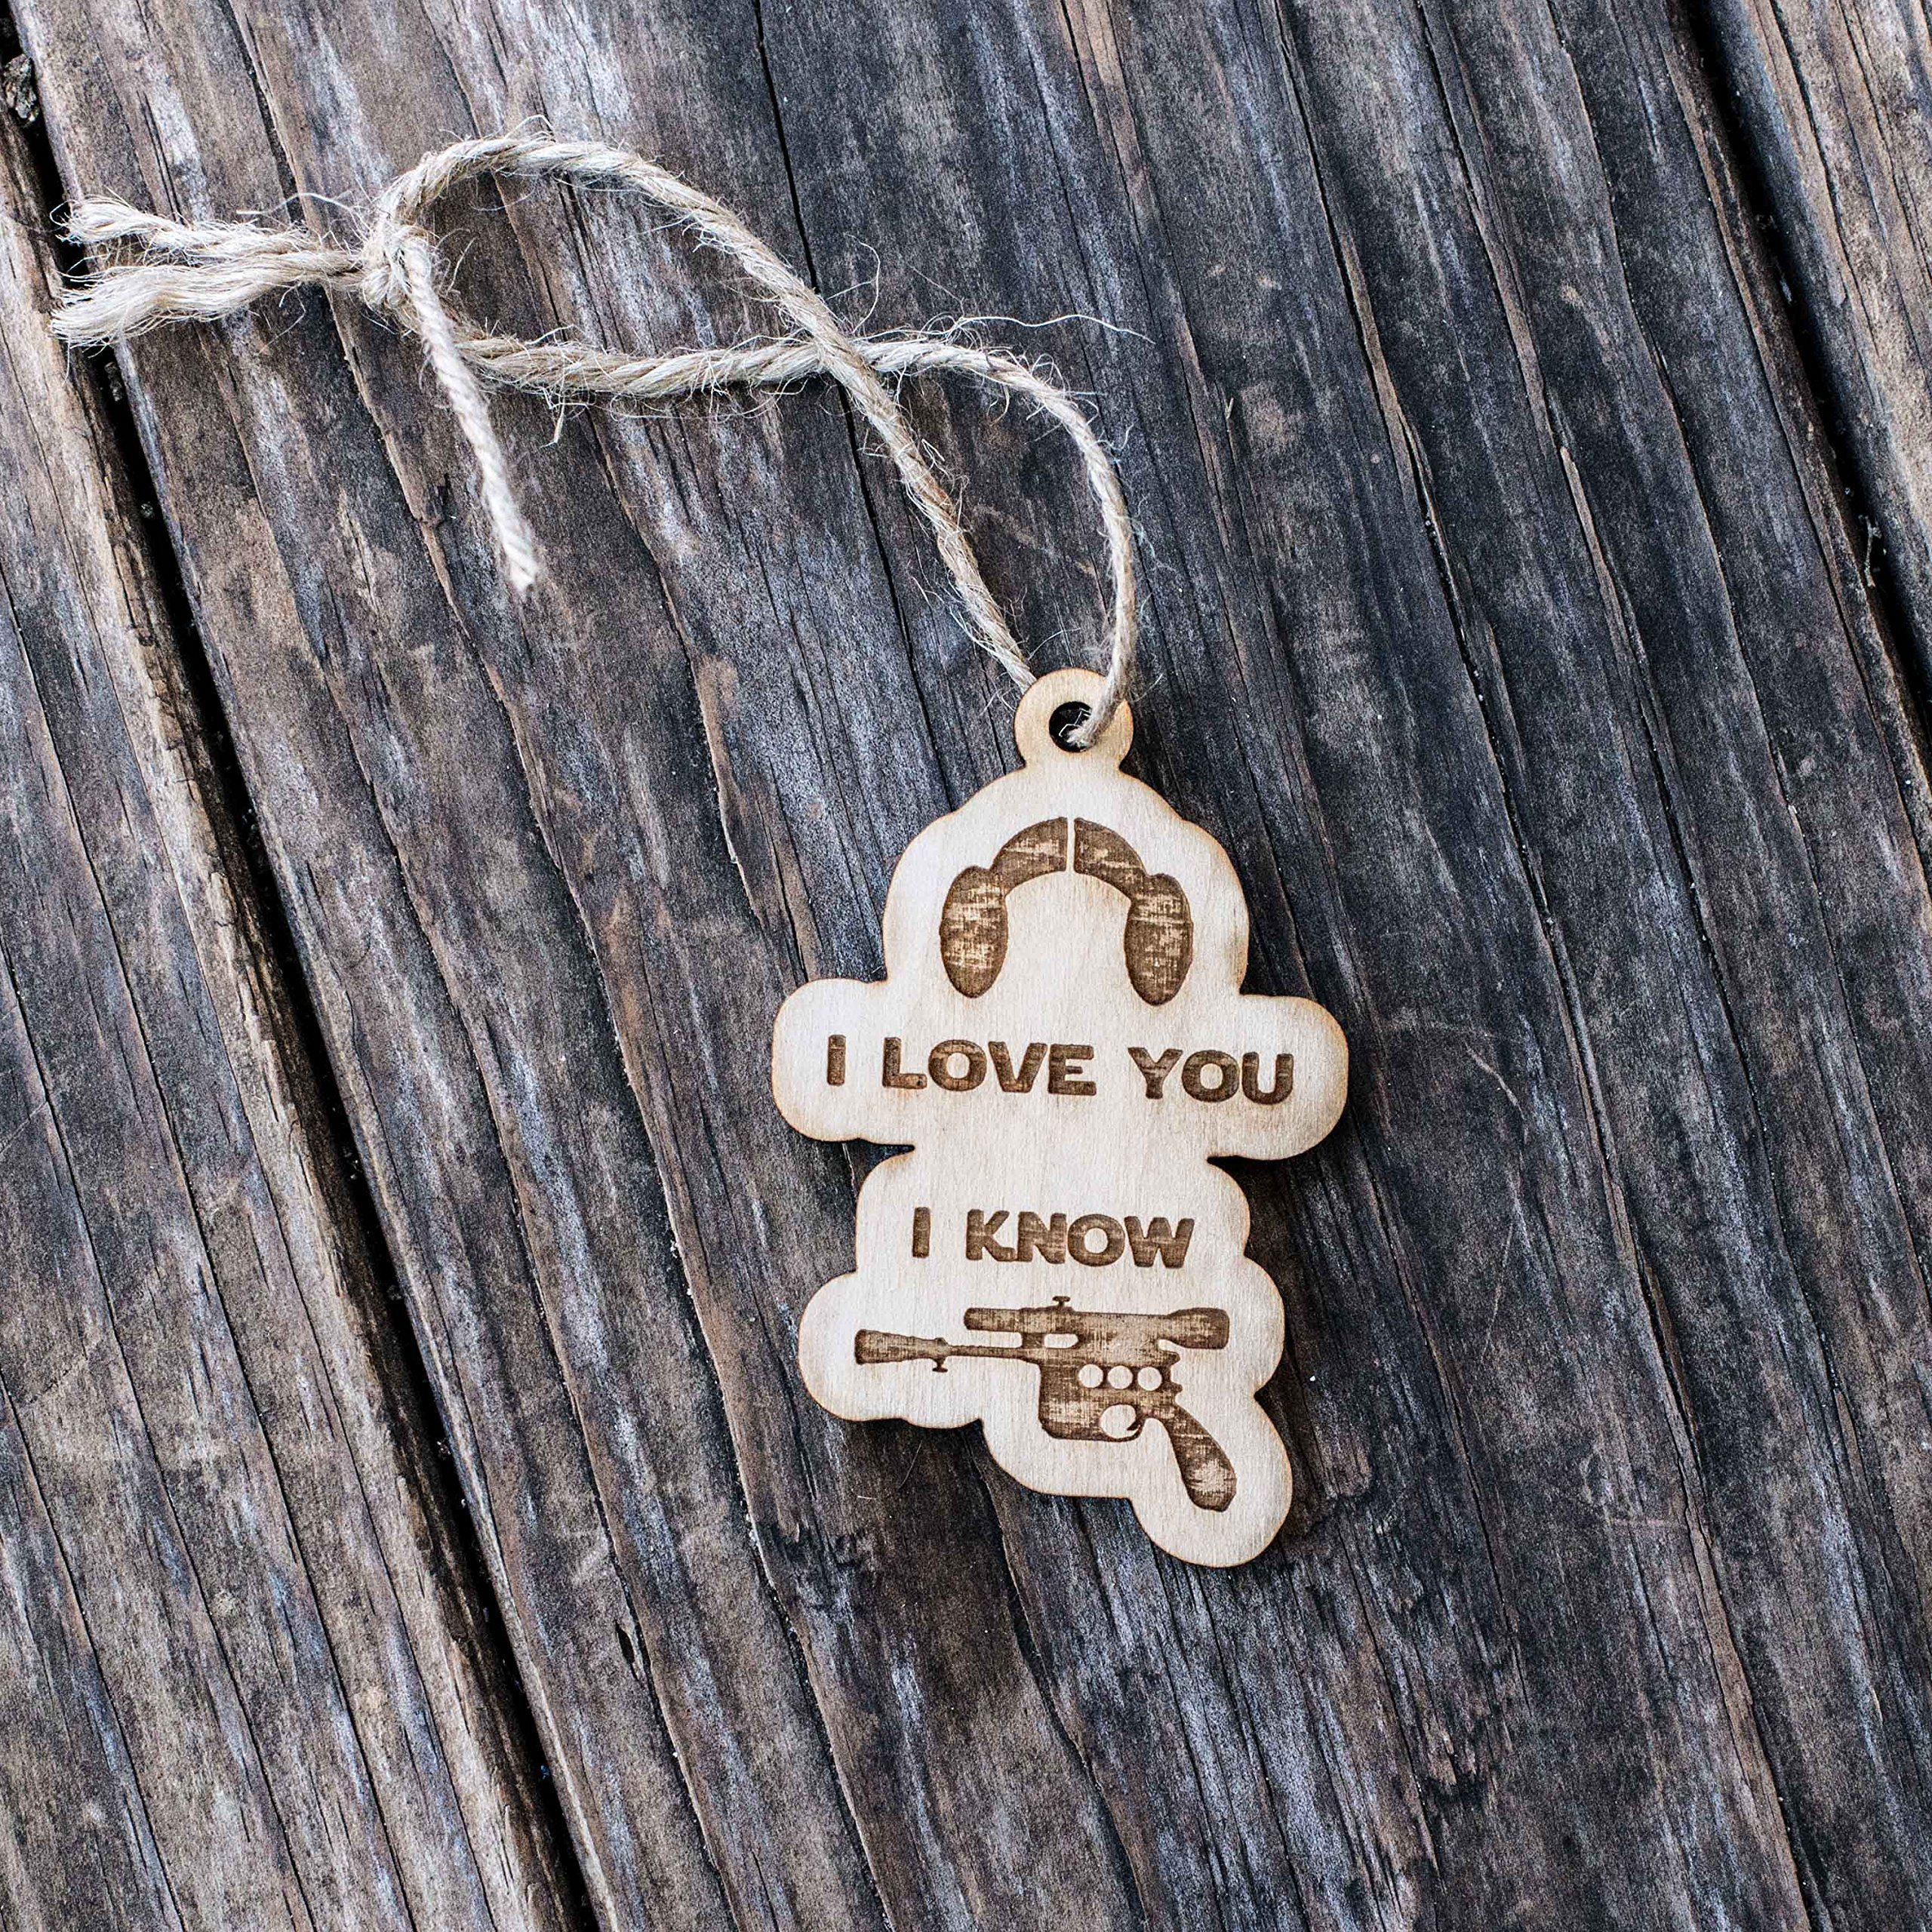 Ornament - I Love You I Know - Raw Wood 3x2in by Hip Flask Plus (Image #2)